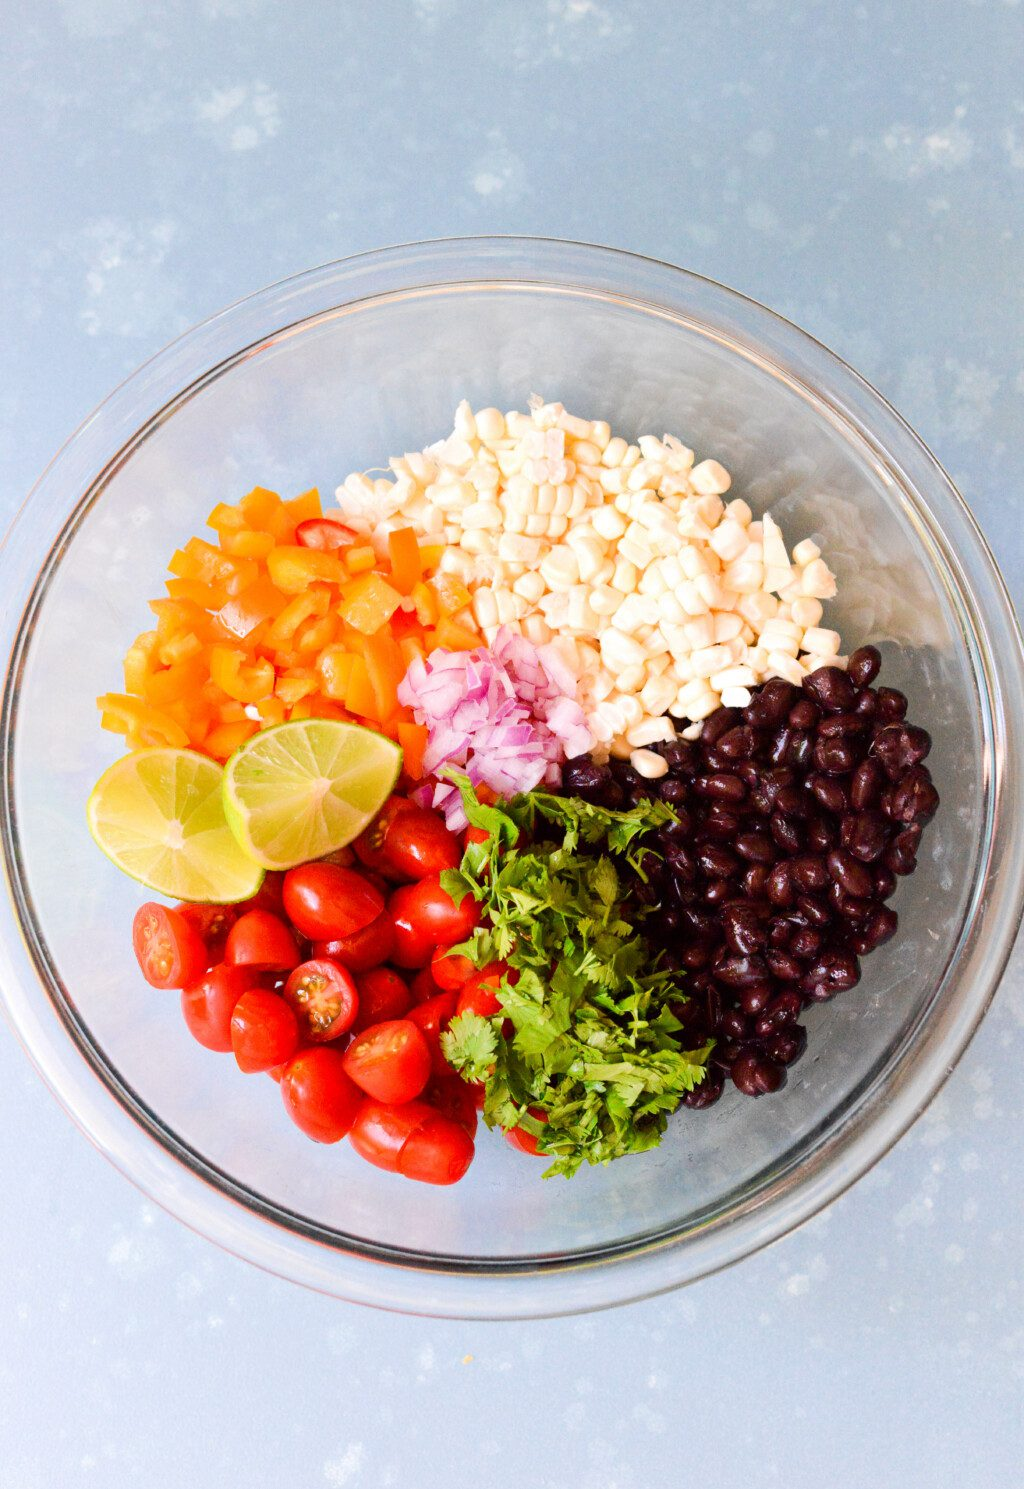 ingredients for black bean salad with corn in glass mixing bowl